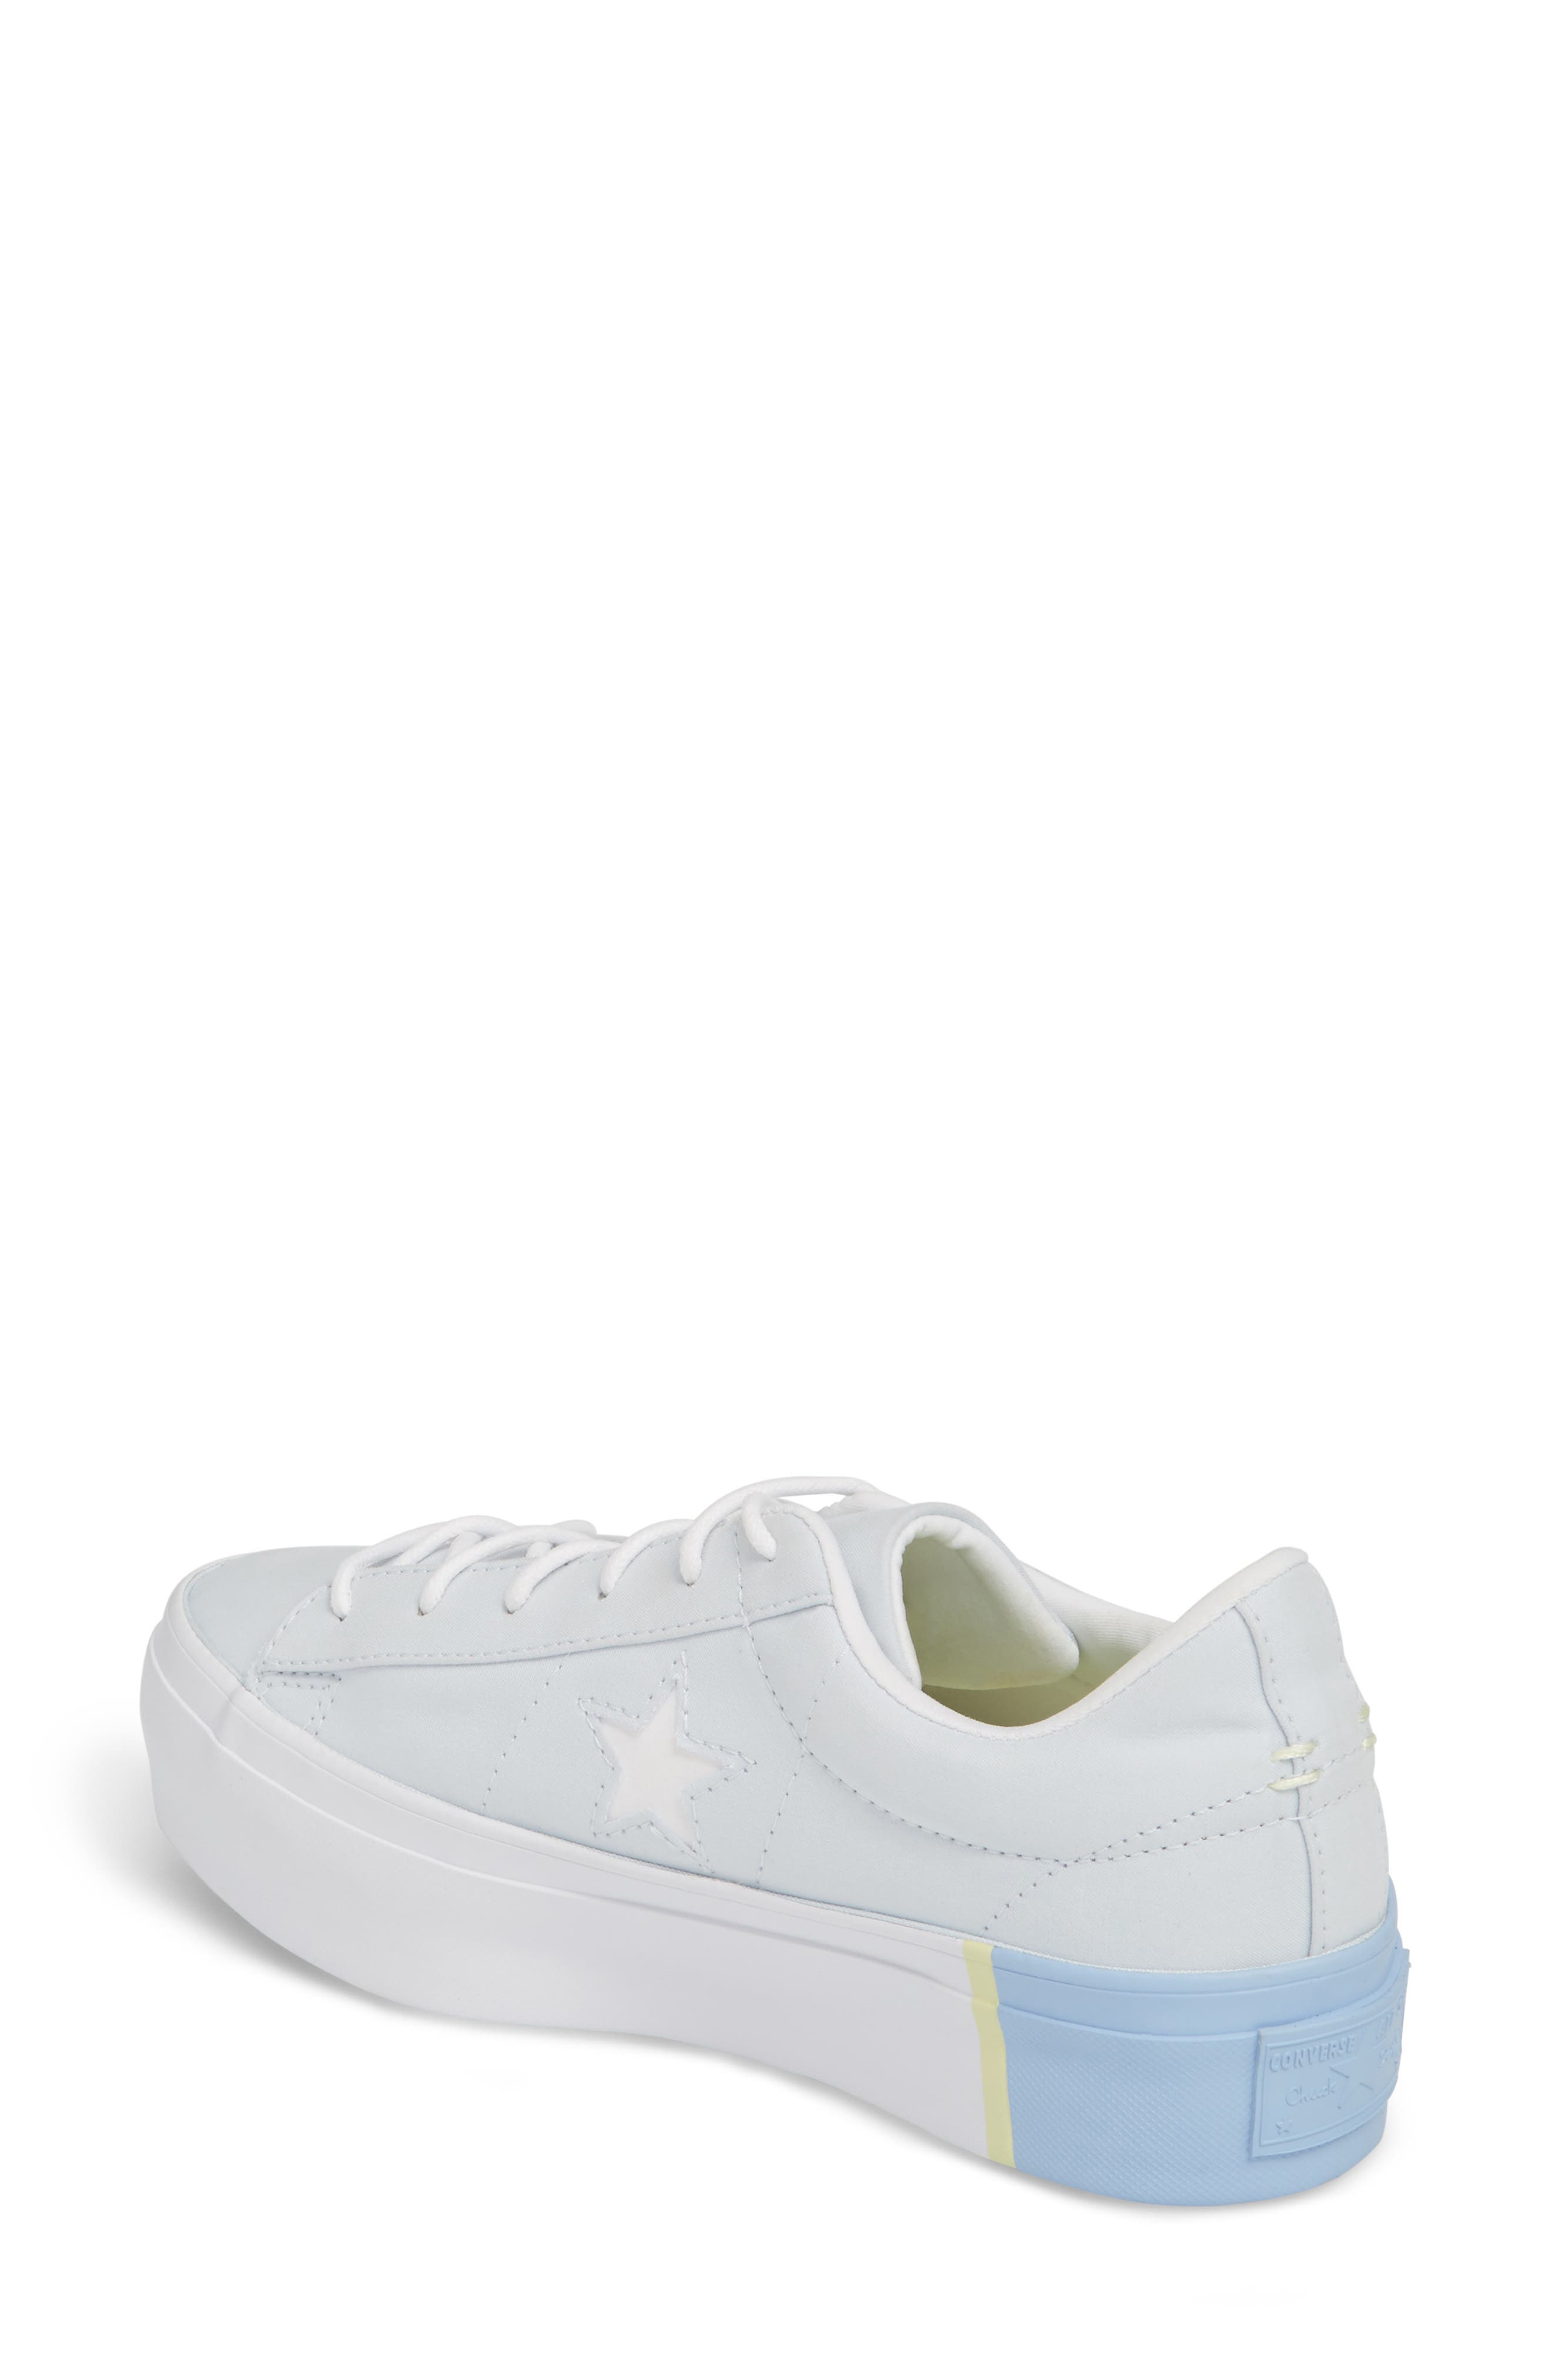 Chuck Taylor<sup>®</sup> All Star<sup>®</sup> One Star Platform Sneaker,                             Alternate thumbnail 4, color,